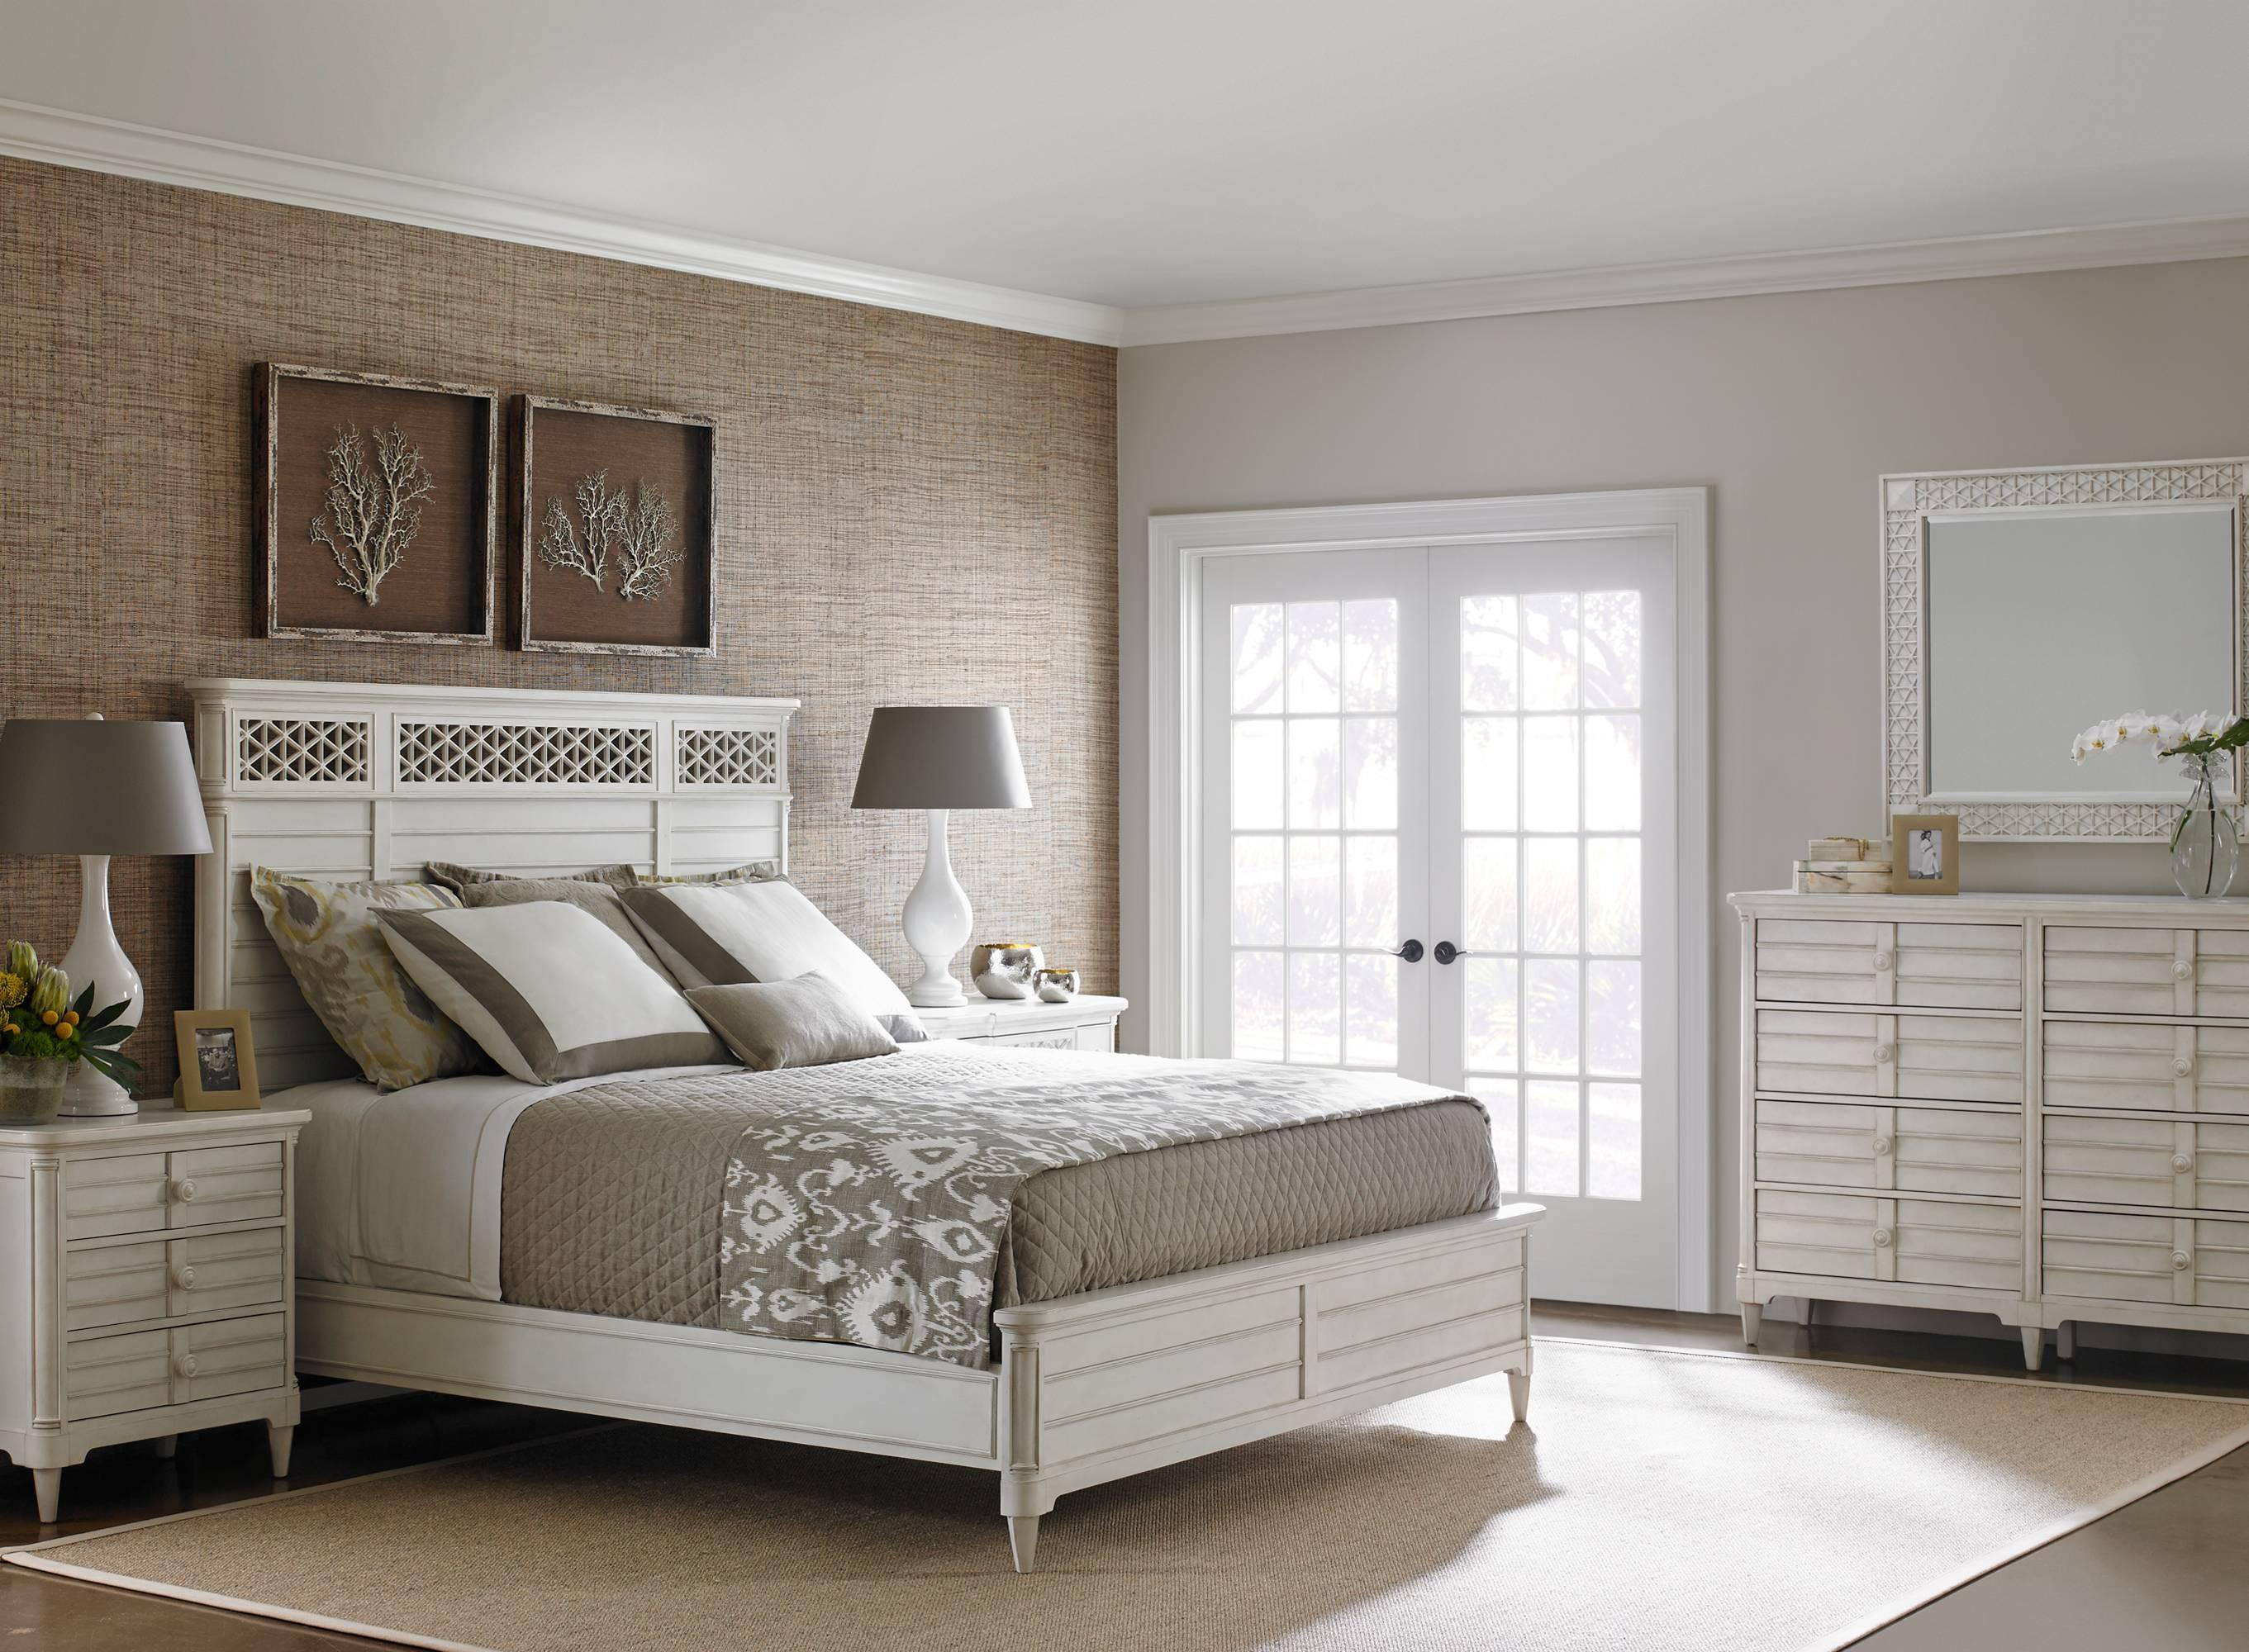 Stanley furniture cypress grove cottage style dresser with for Magnolia homes cypress grove